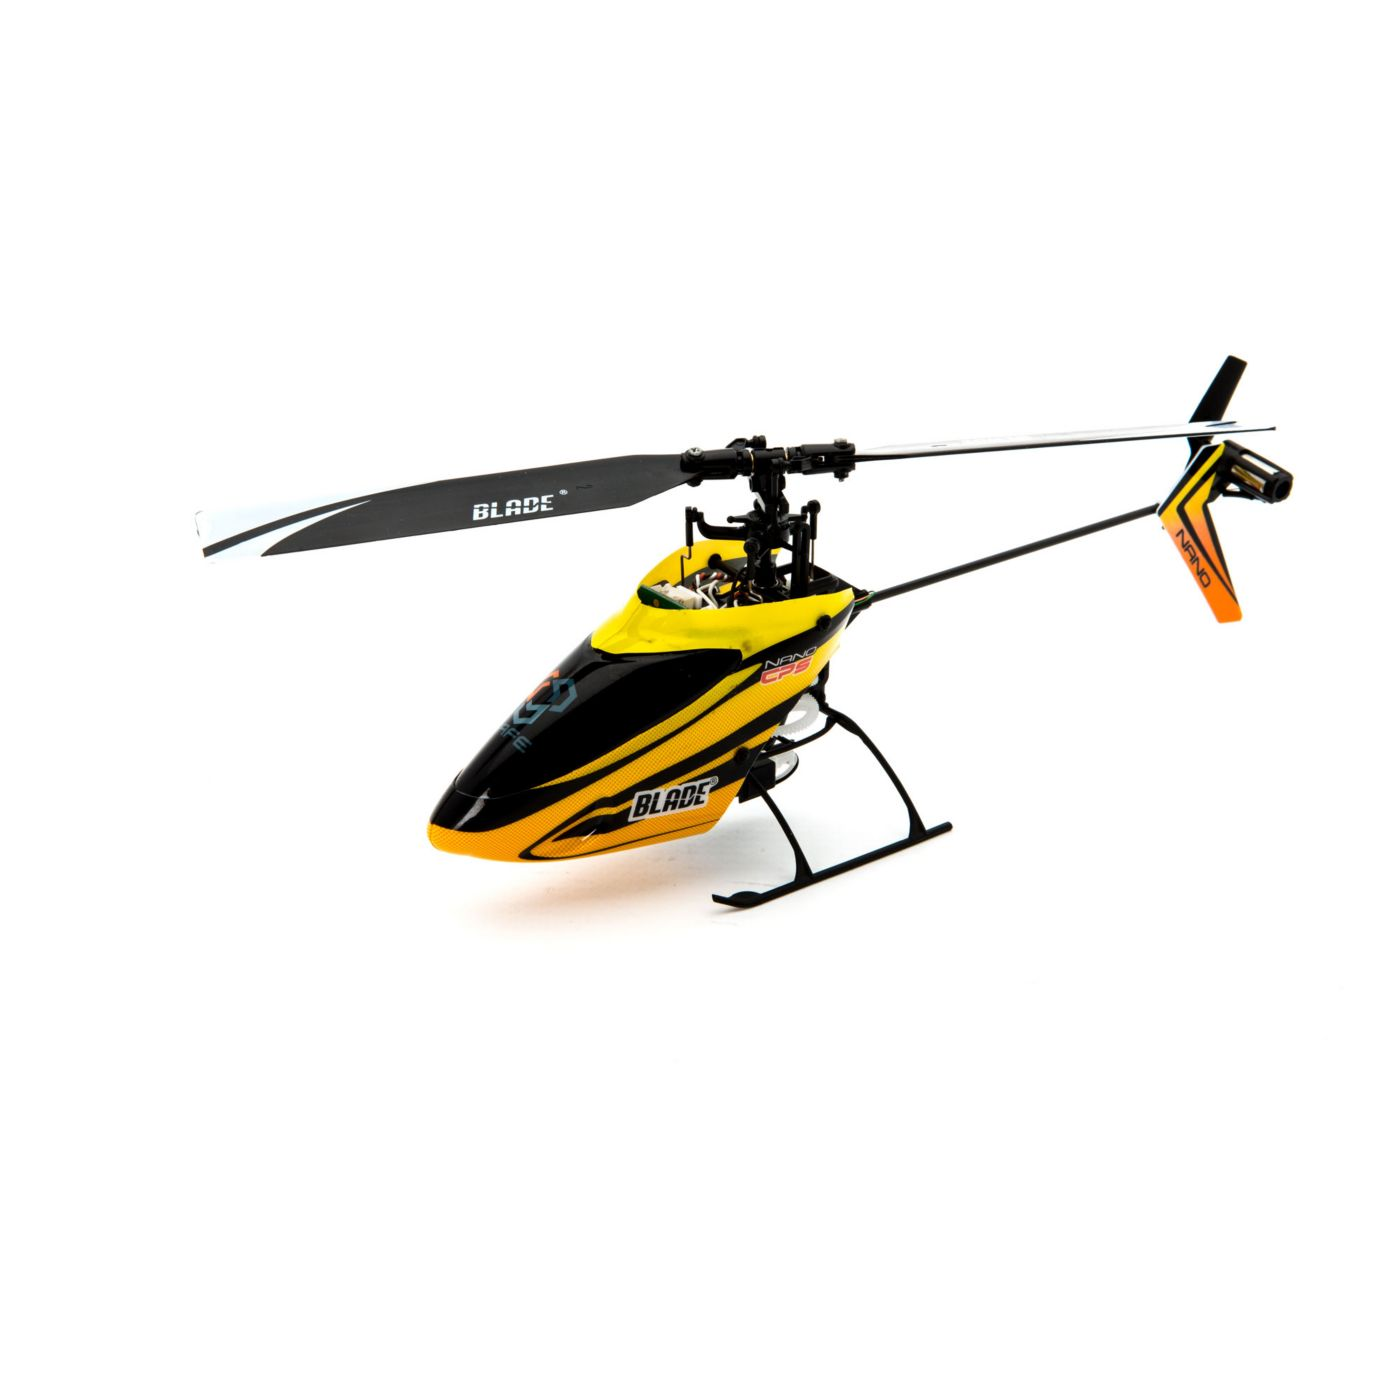 heli max cp with Blade Nano Bnf P 22601 on Heli Max Axe 100 Cp Ready To Fly Electric Flybarless Helicopter P 15708 in addition Heli Max Canopy Red Scheme Novus 125 Cp 125 Fp Hmxe7427 in addition Watch also Watch as well Watch.